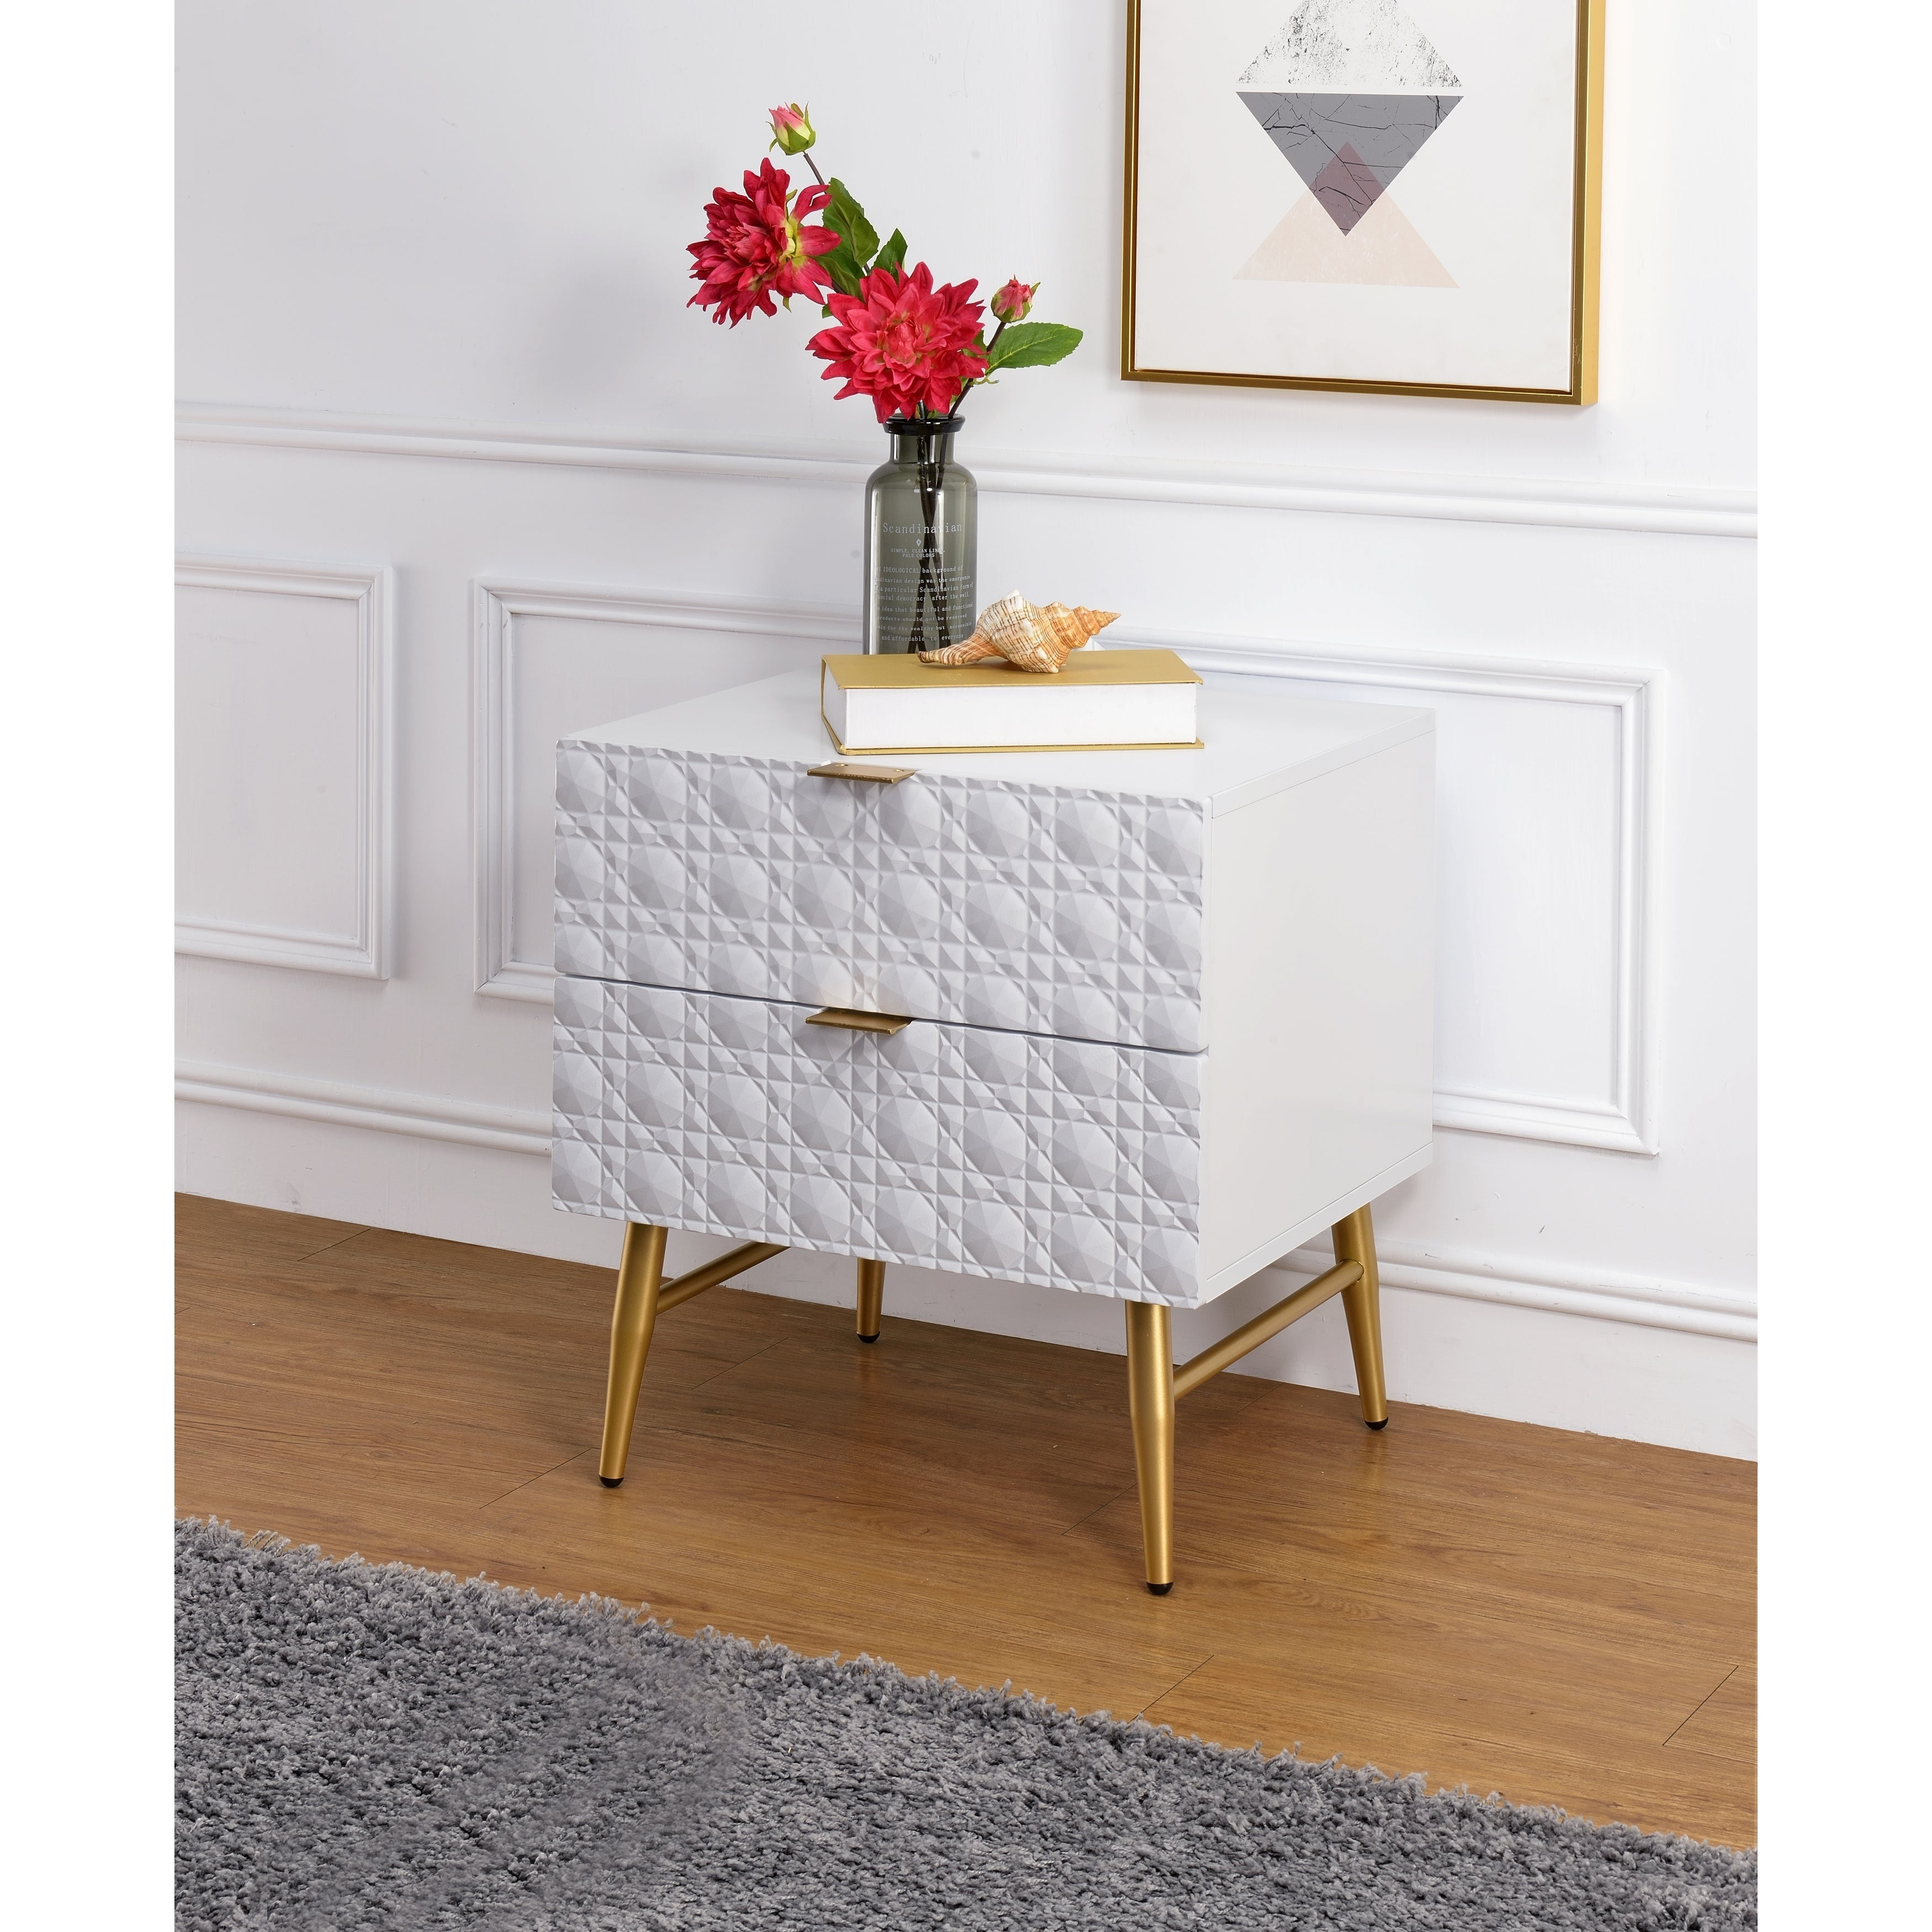 Two Drawers Wooden Nightstand With Textured Front Panel And Tapered Legs White And Gold